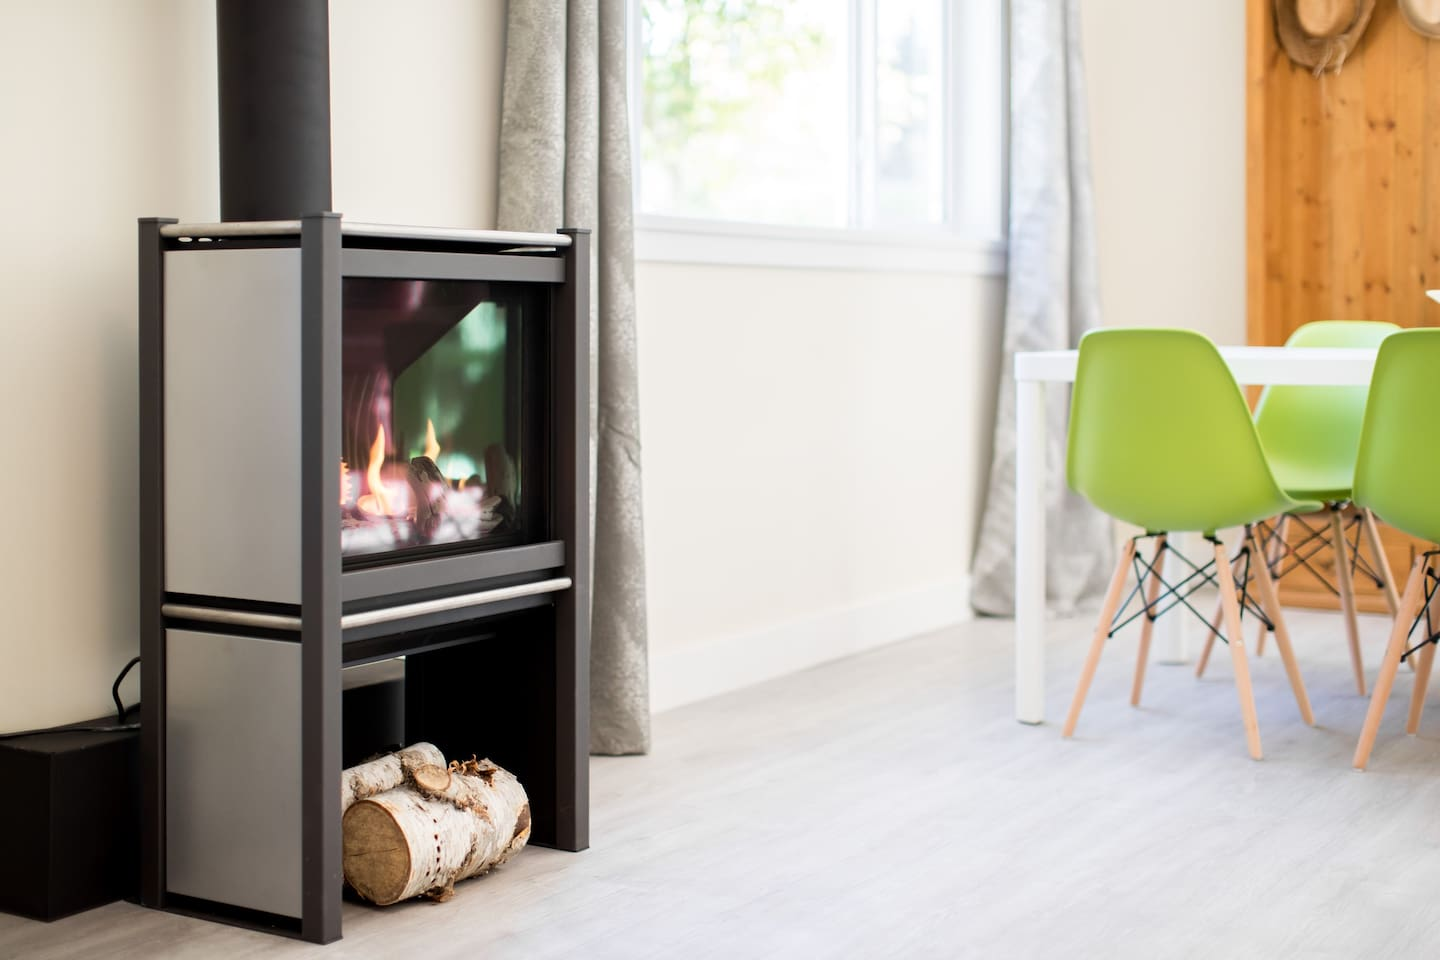 Easy-on gas fireplace. Cozy!